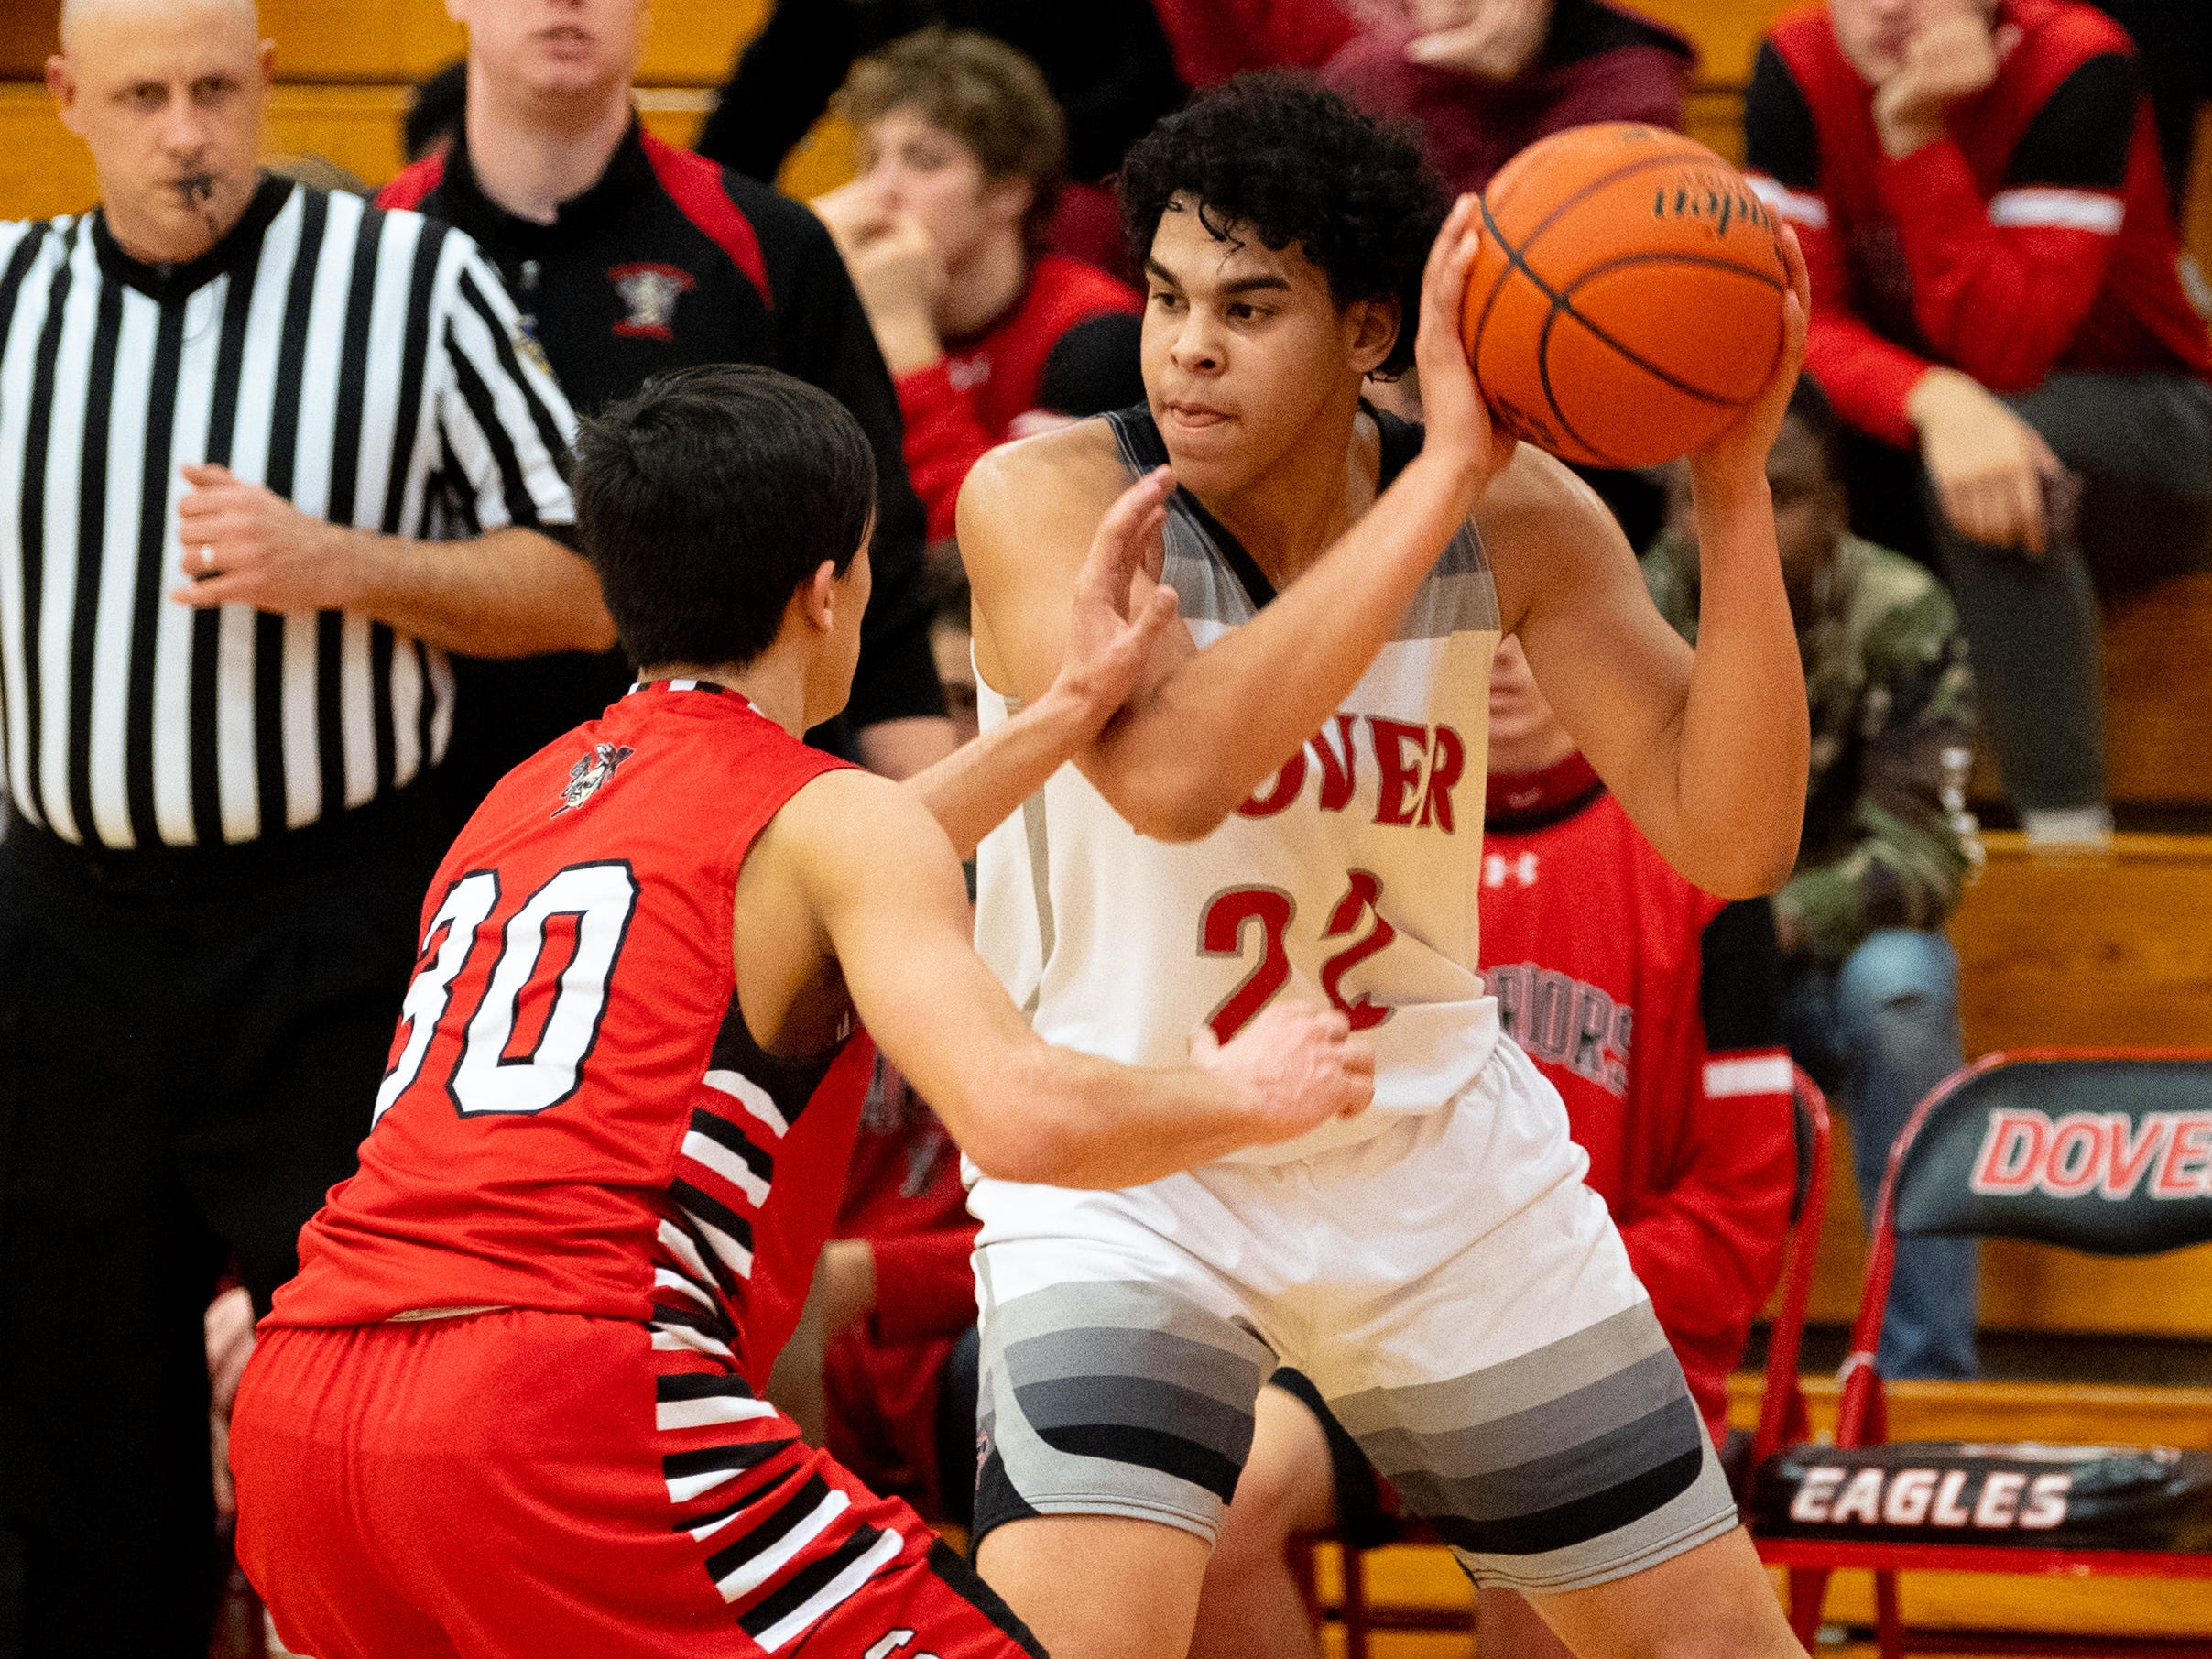 Dover's Elijah Sutton (22) scans the floor during the boys' basketball game between Dover and Susquehannock at Dover Area High School, December 18, 2018. The Eagles defeated the Warriors 69-61.